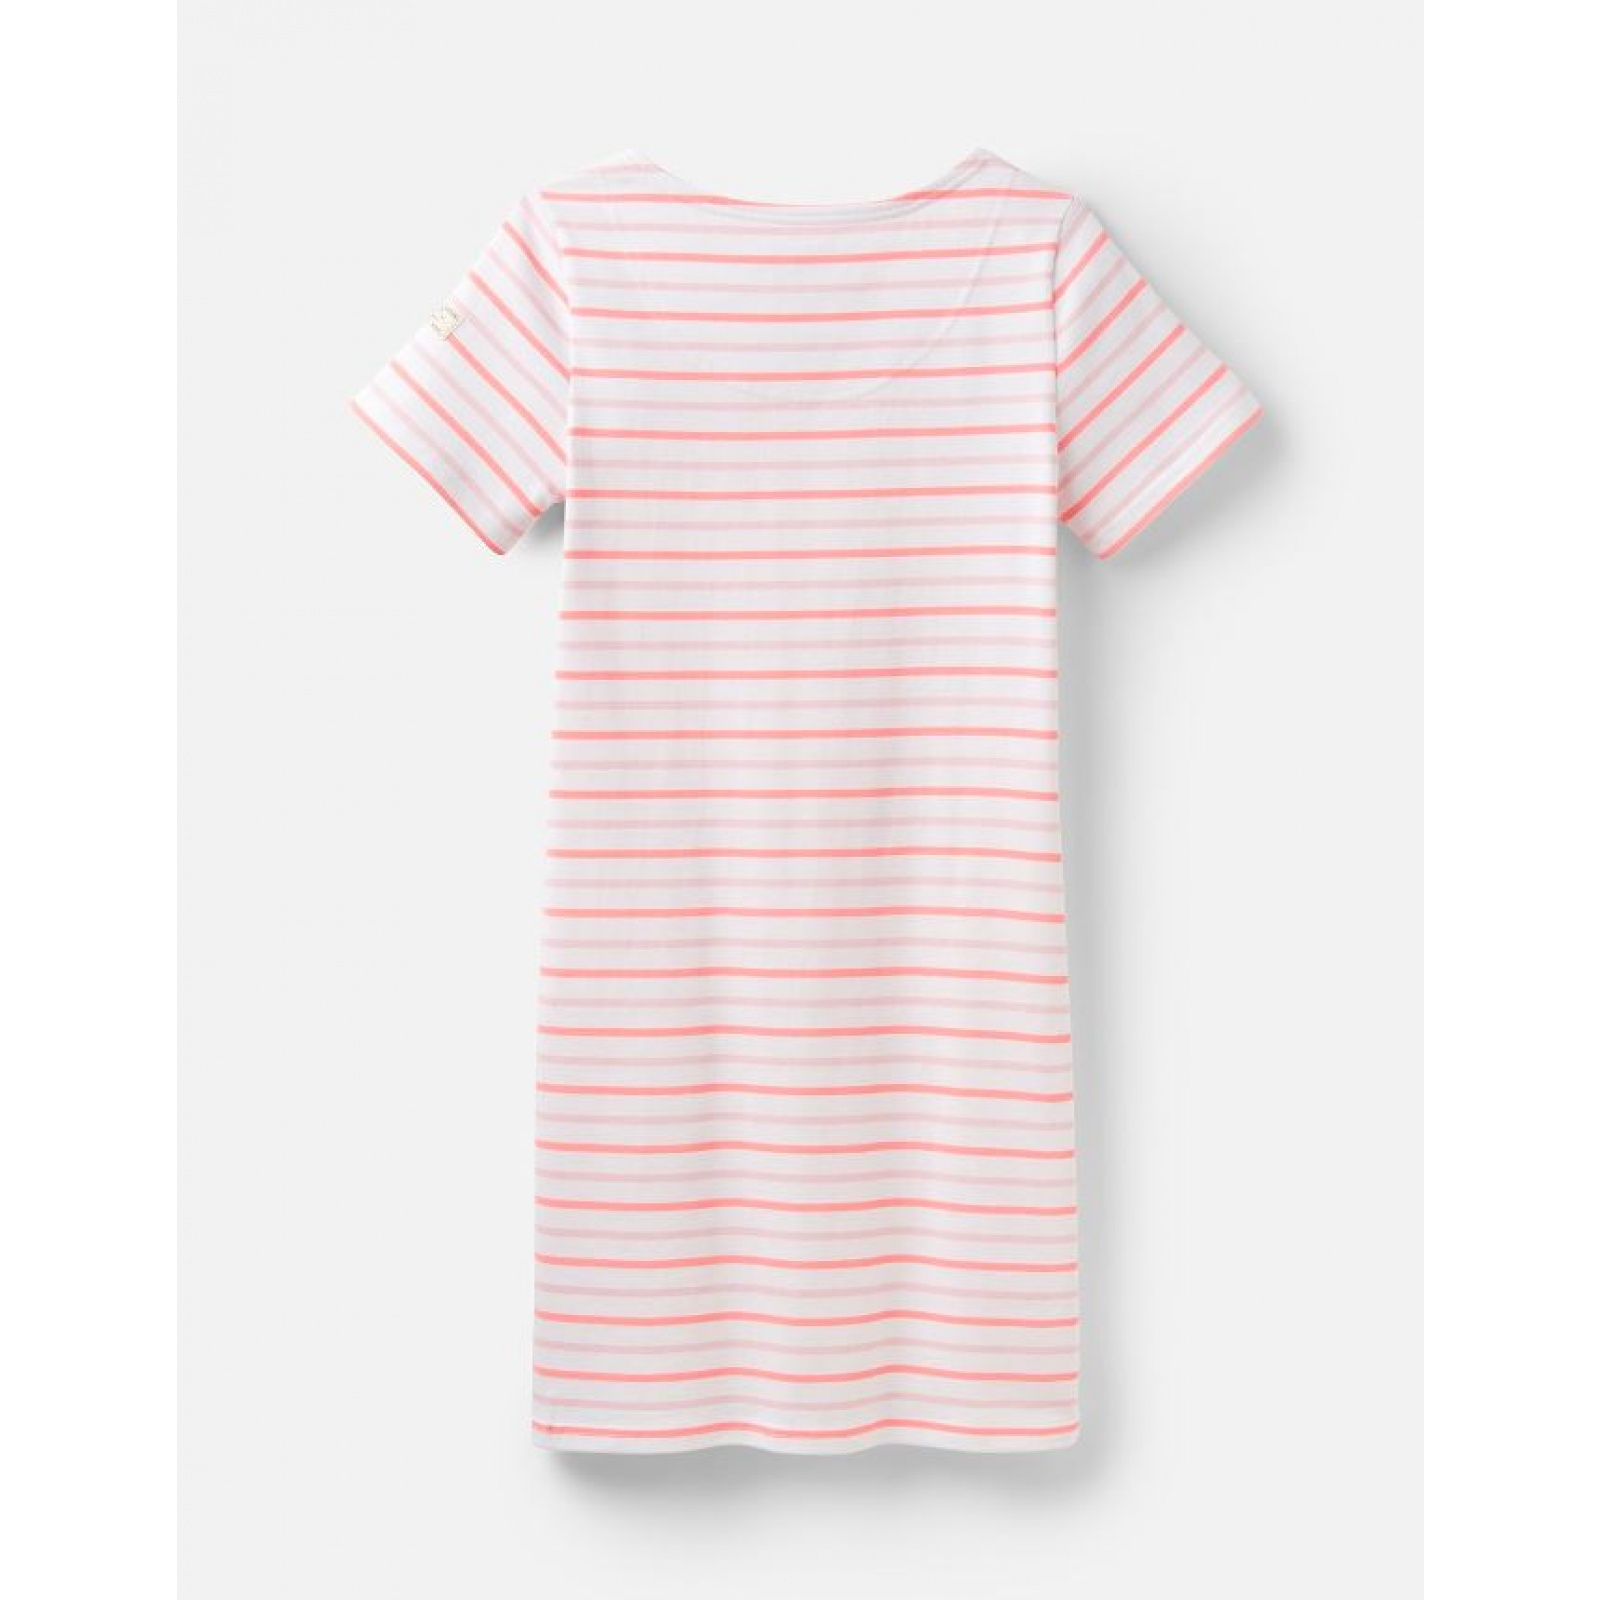 Joules-Riviera-T-Shirt-Dress-with-Short-Sleeves-SS19 miniature 35